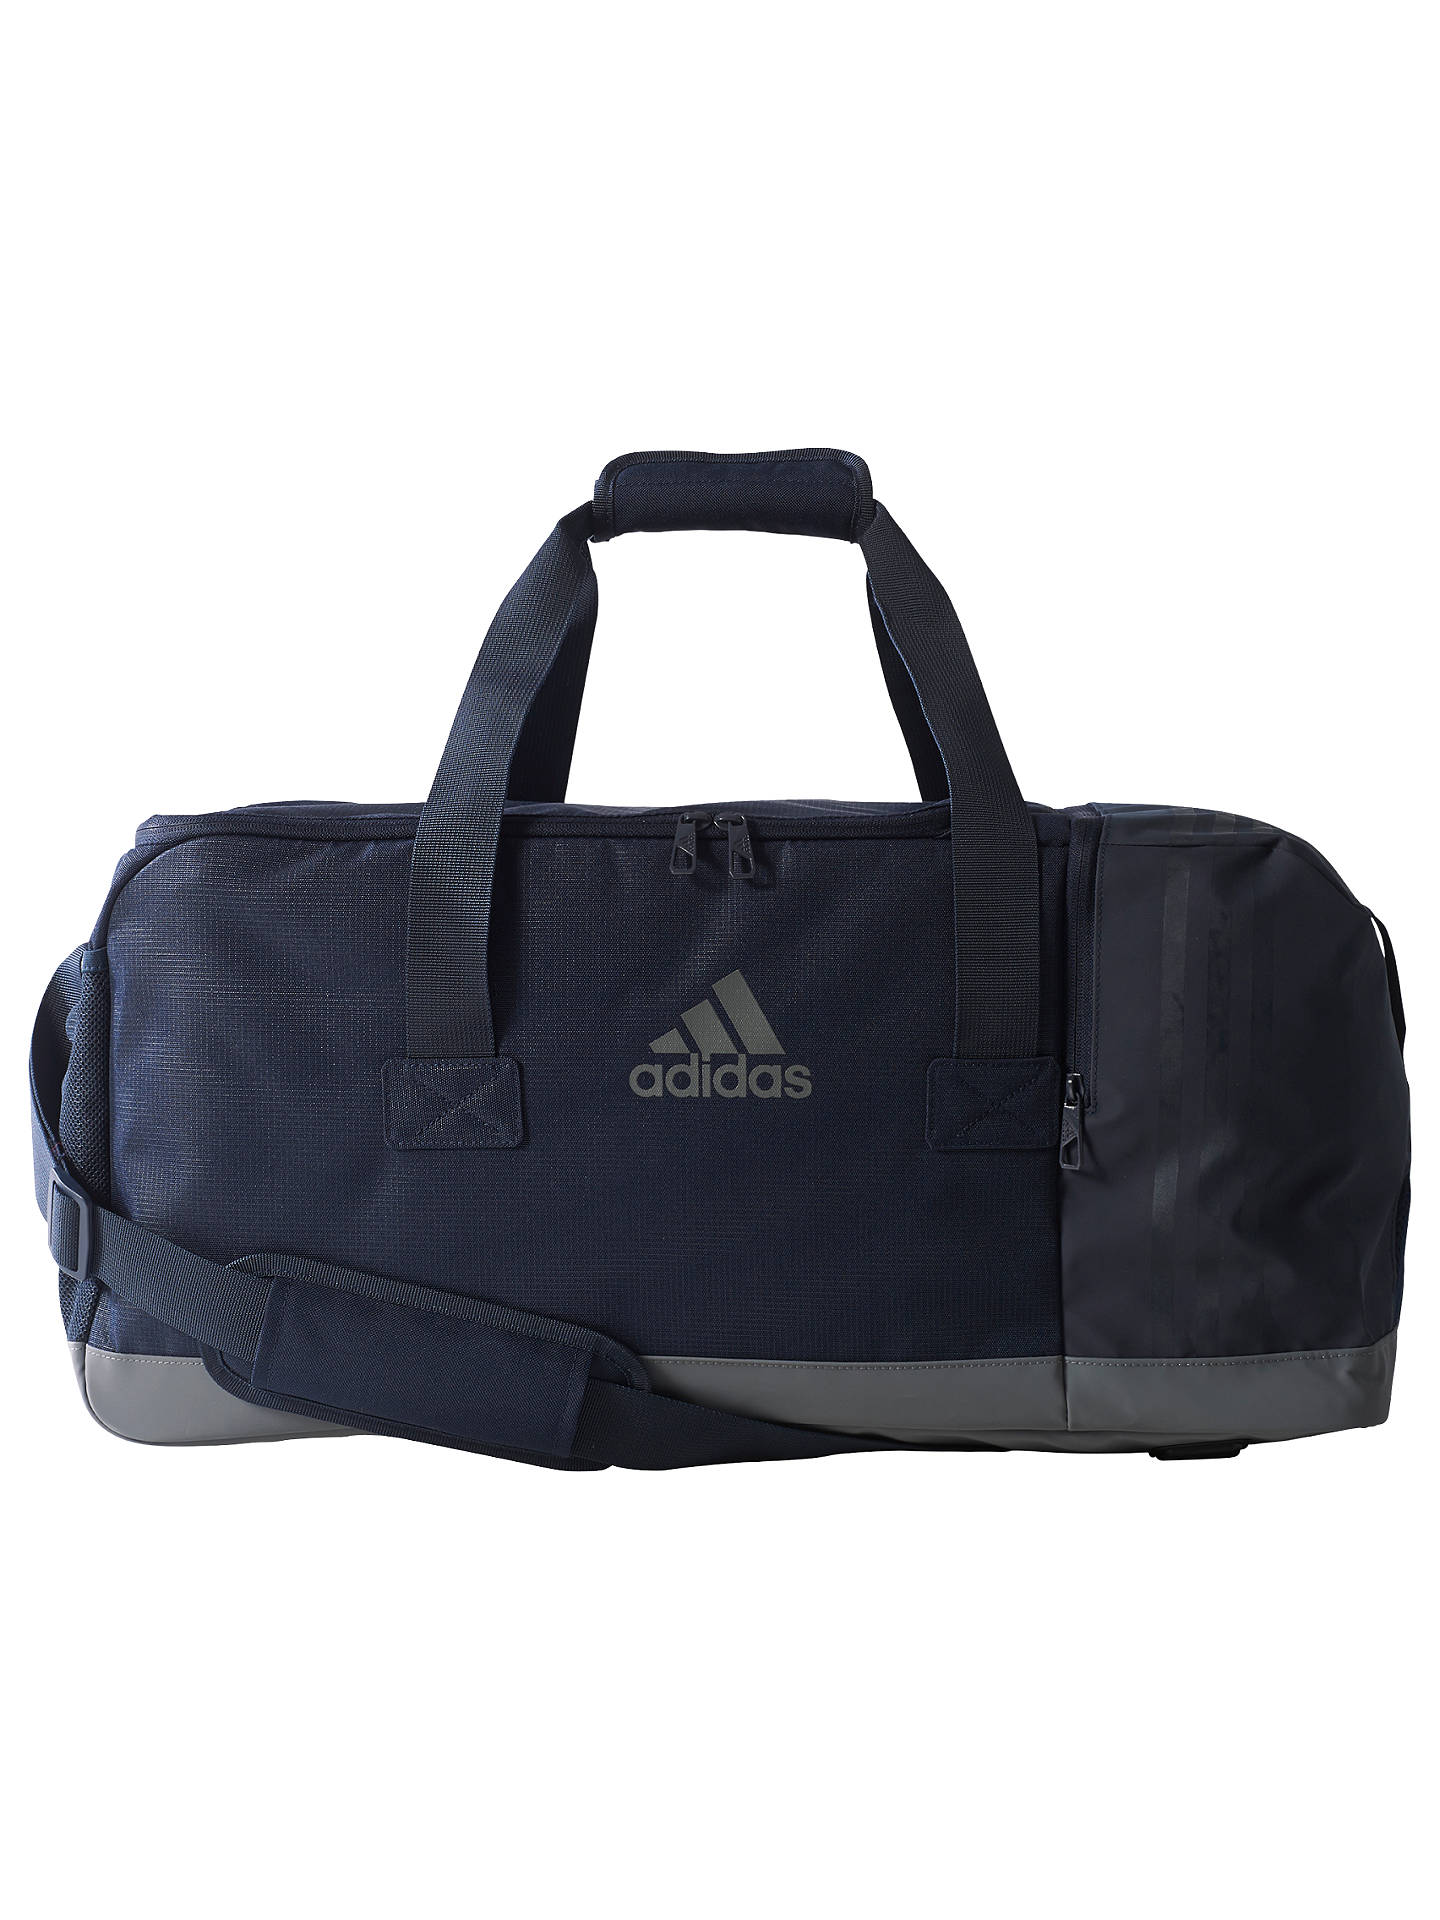 46c0374bf5b Buy Adidas 3-Stripes Performance Sports Bag